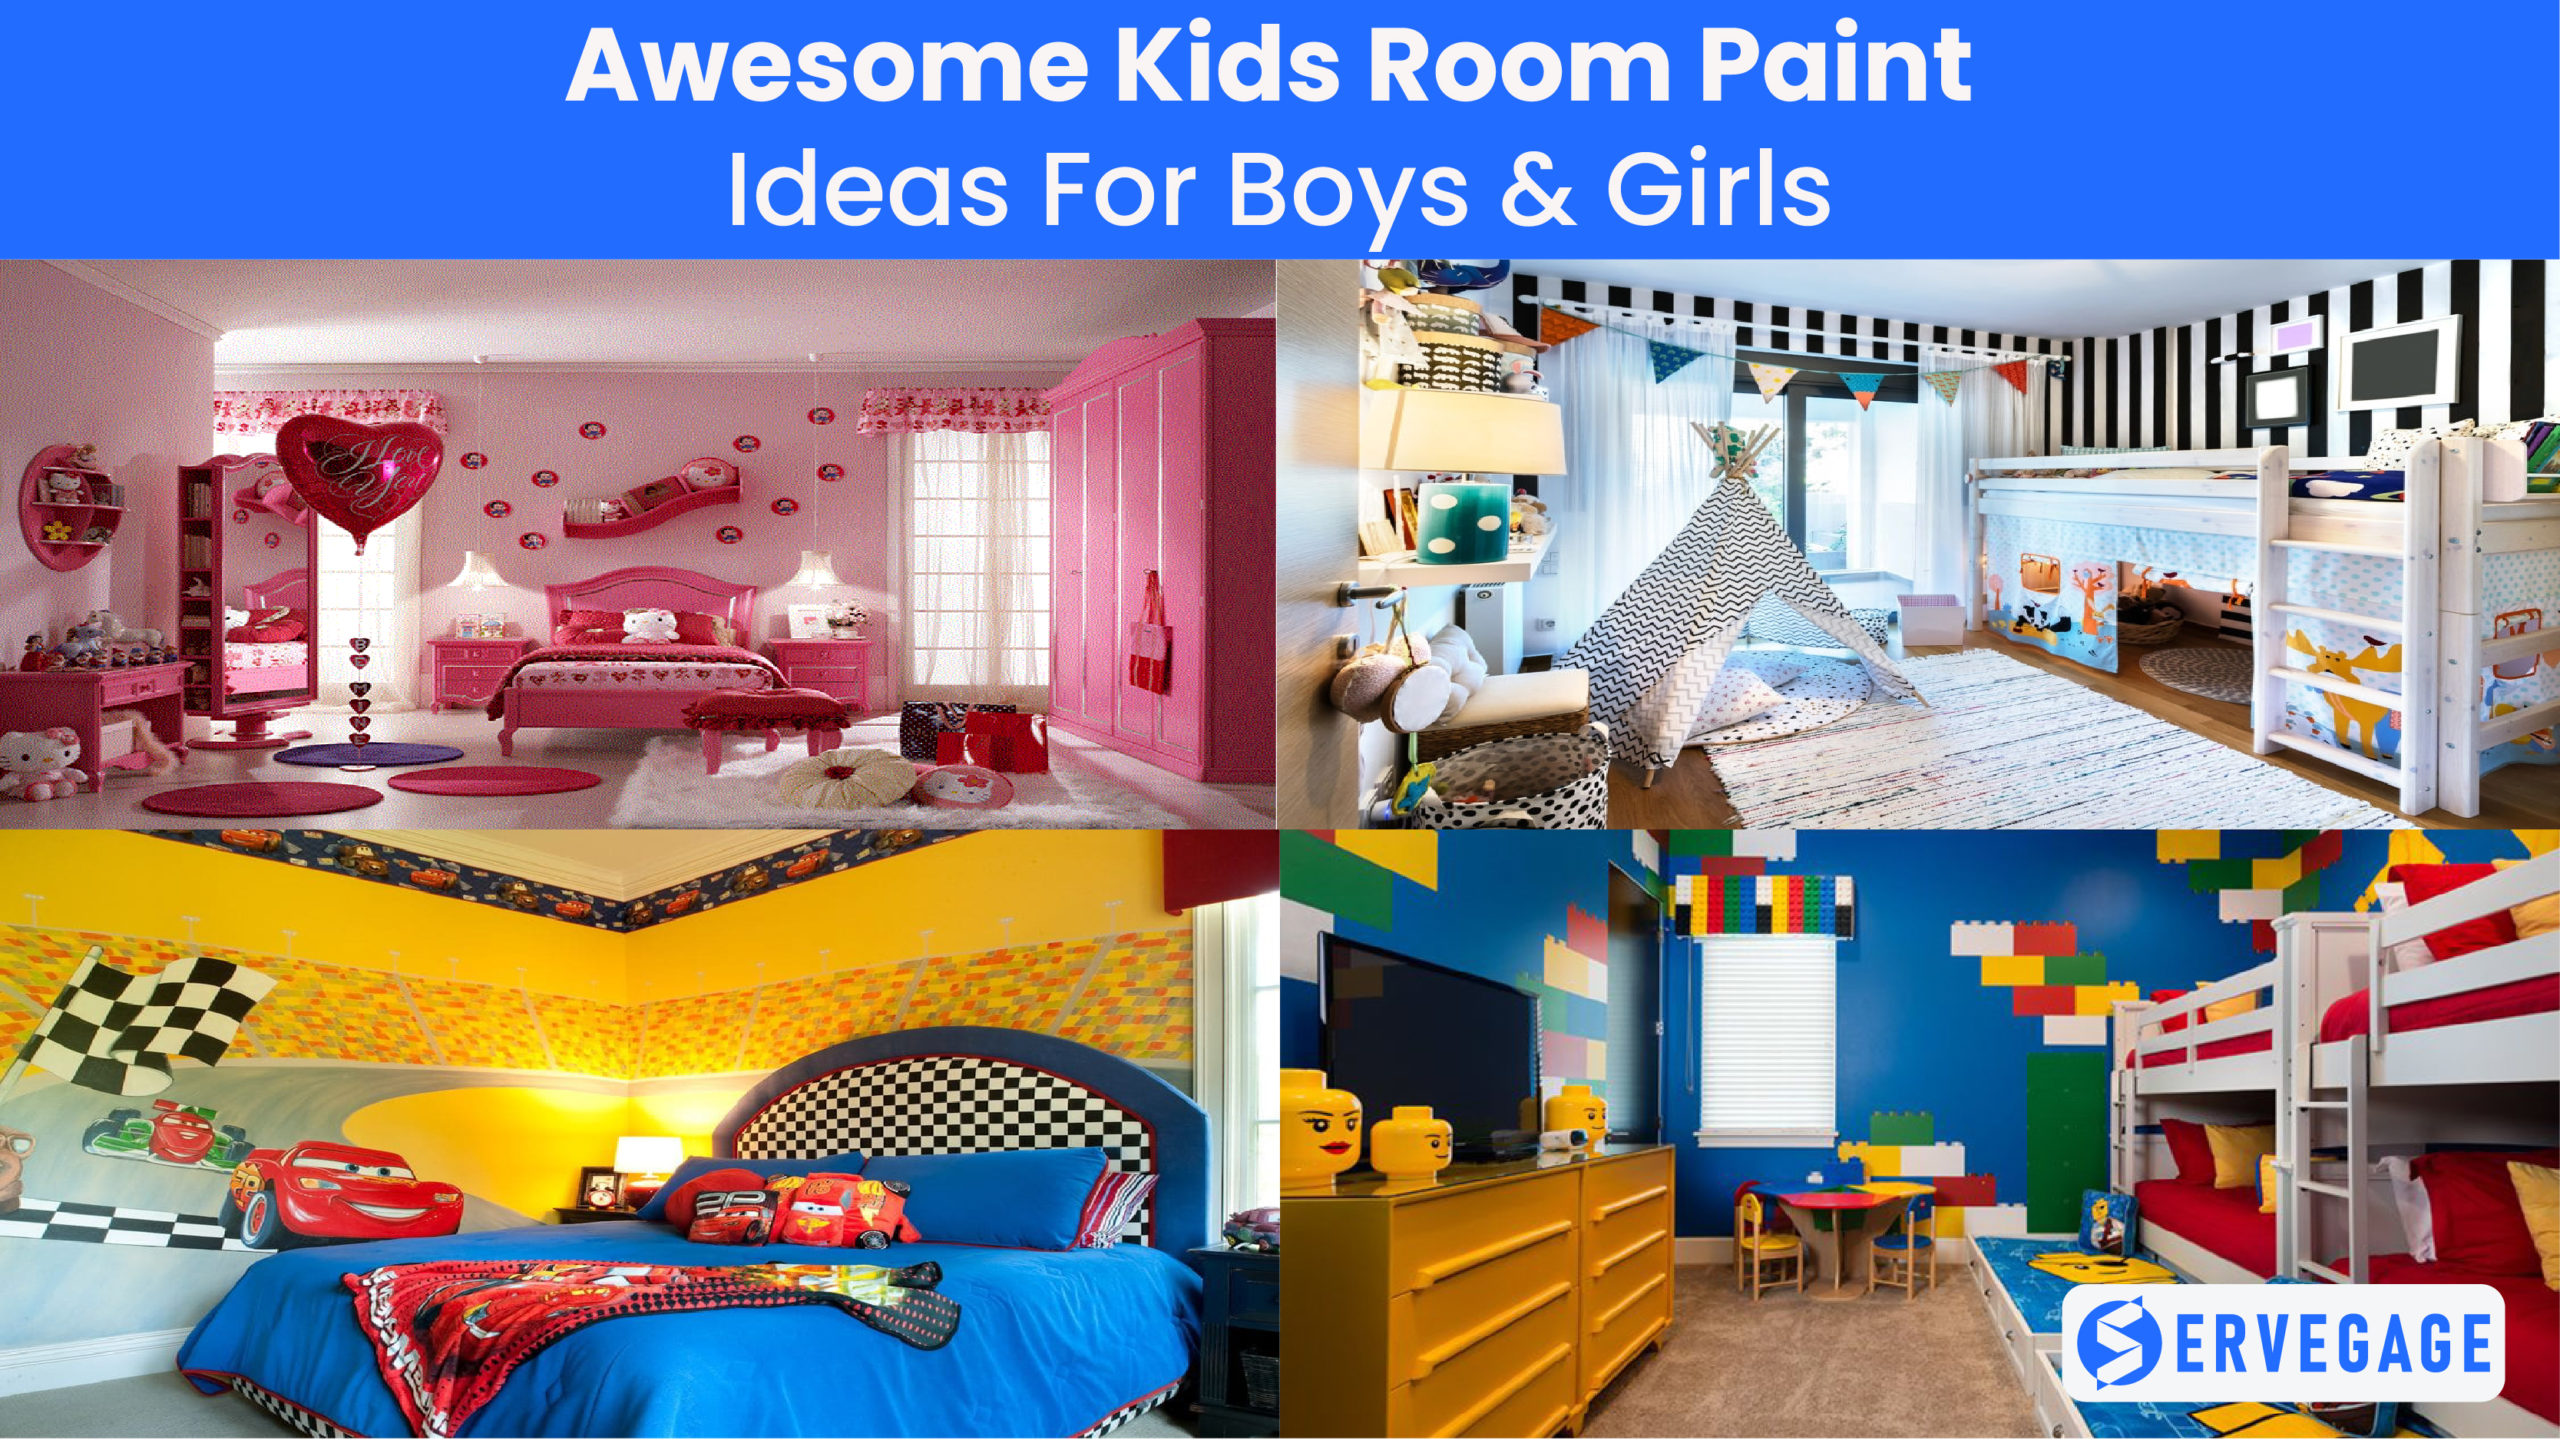 7 Kids Room Paint Ideas